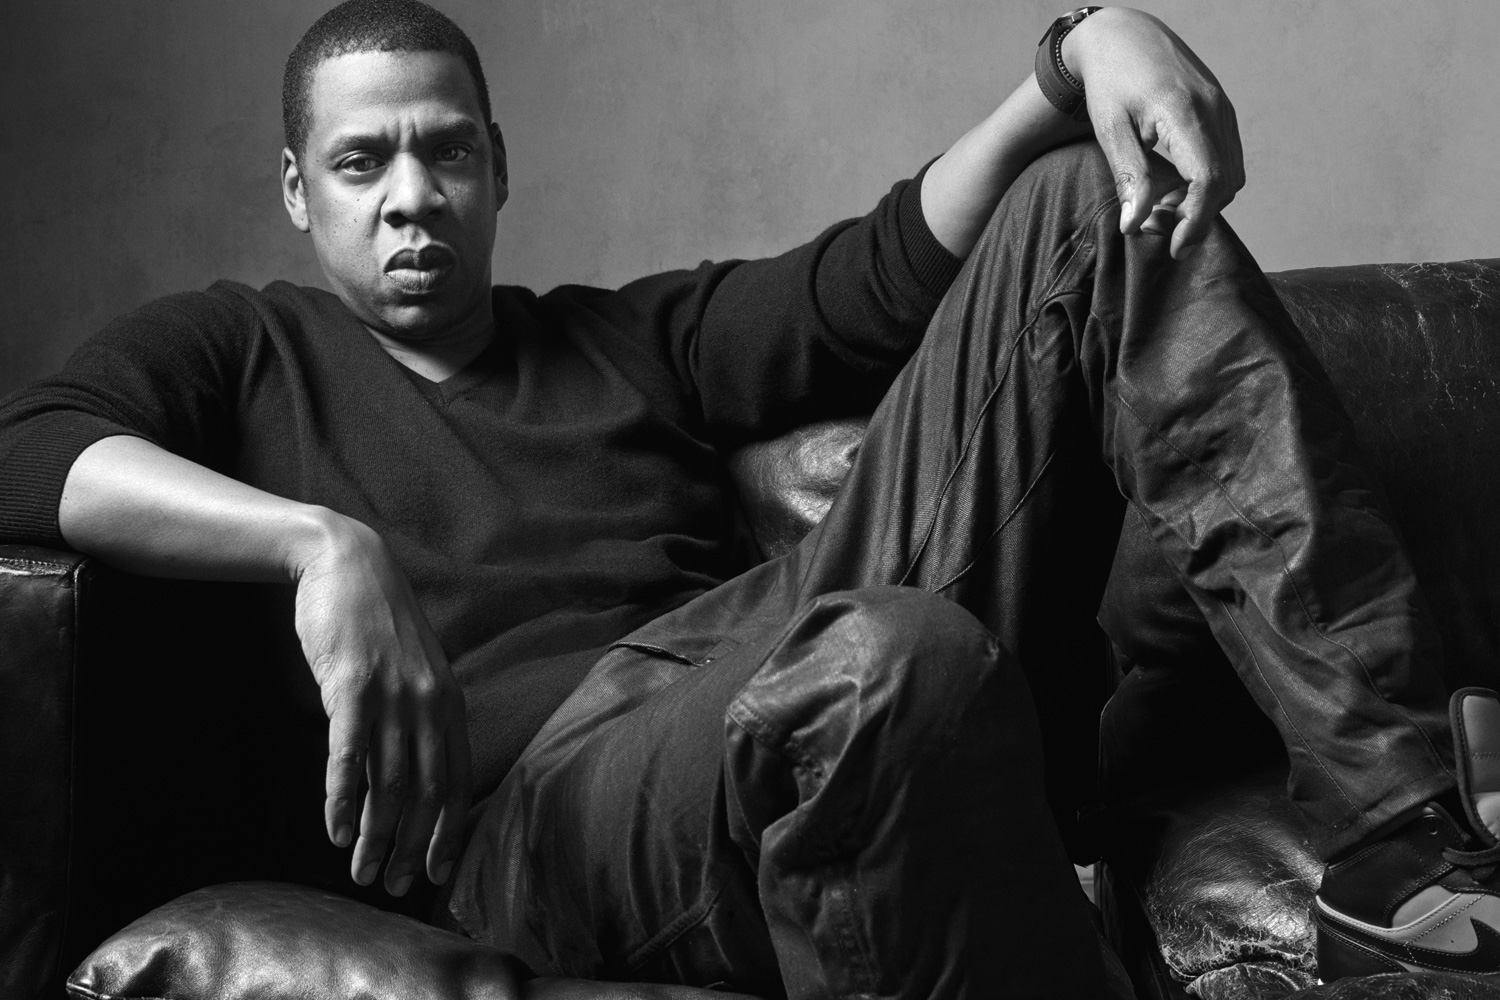 Jay Z. From  The 100 Most Influential People in the World,  April 29, 2013 issue.